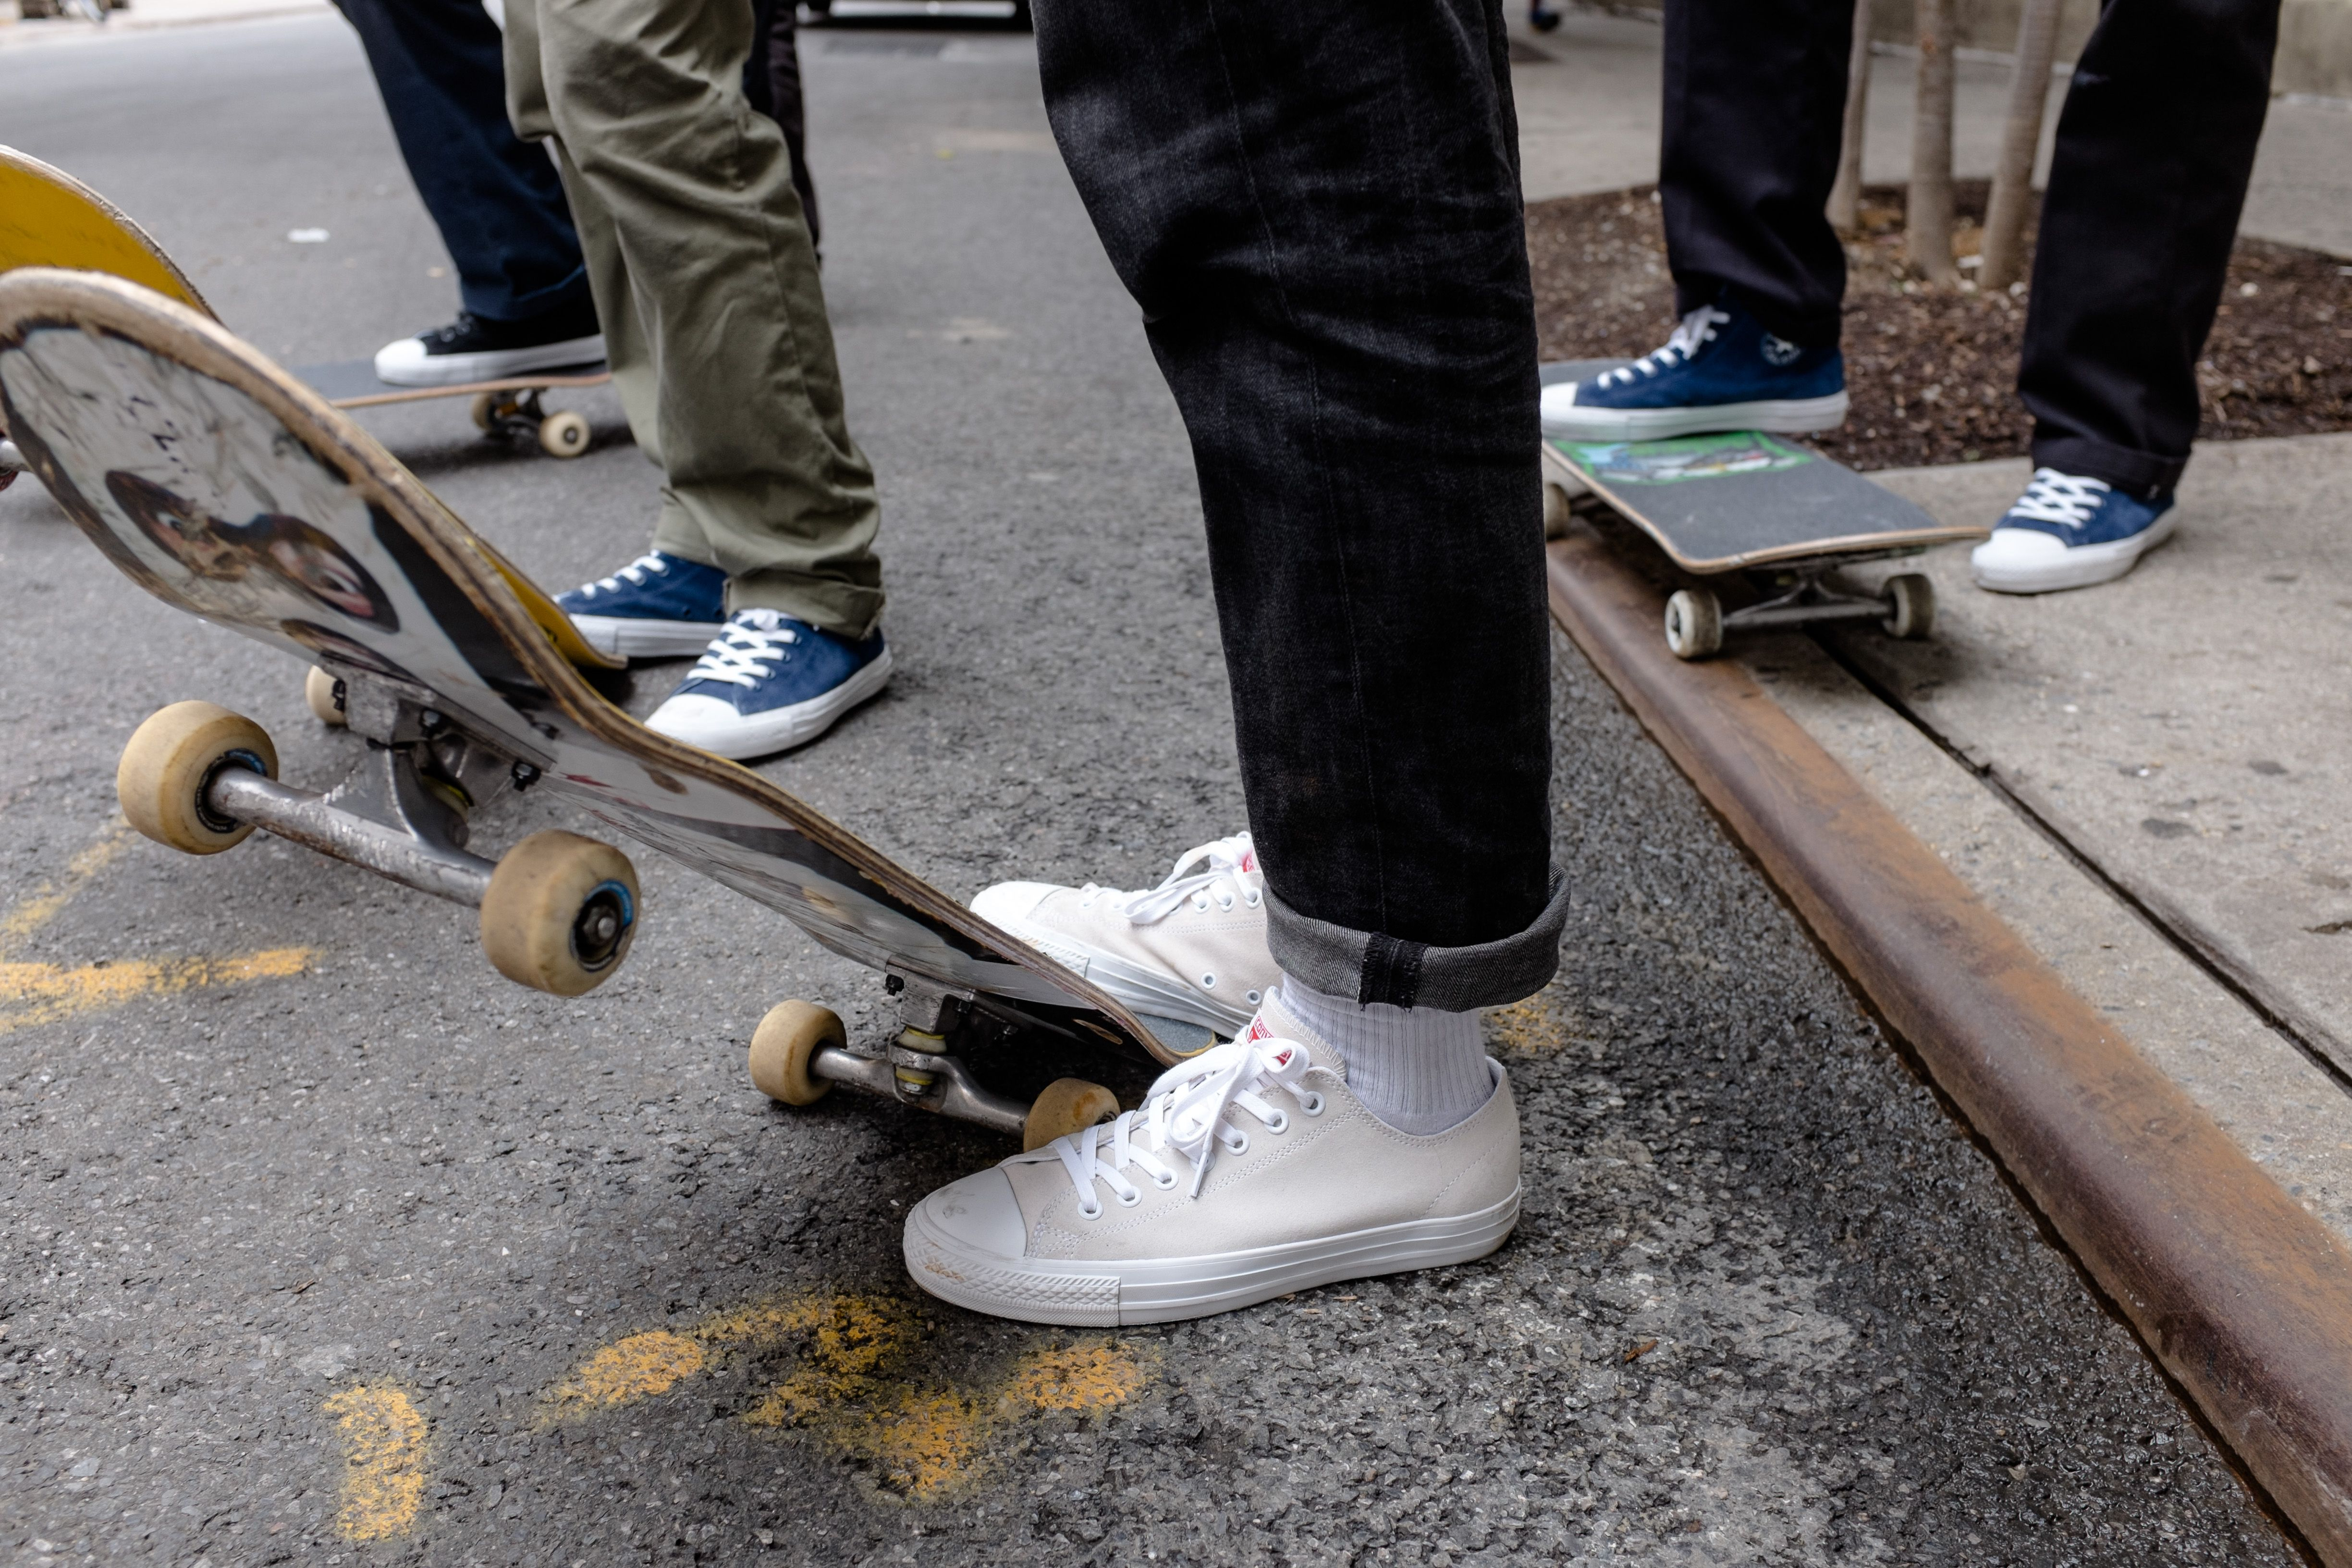 f19c18f240c Polar Skate Co. have Dropped a Collaboration with Converse Cons